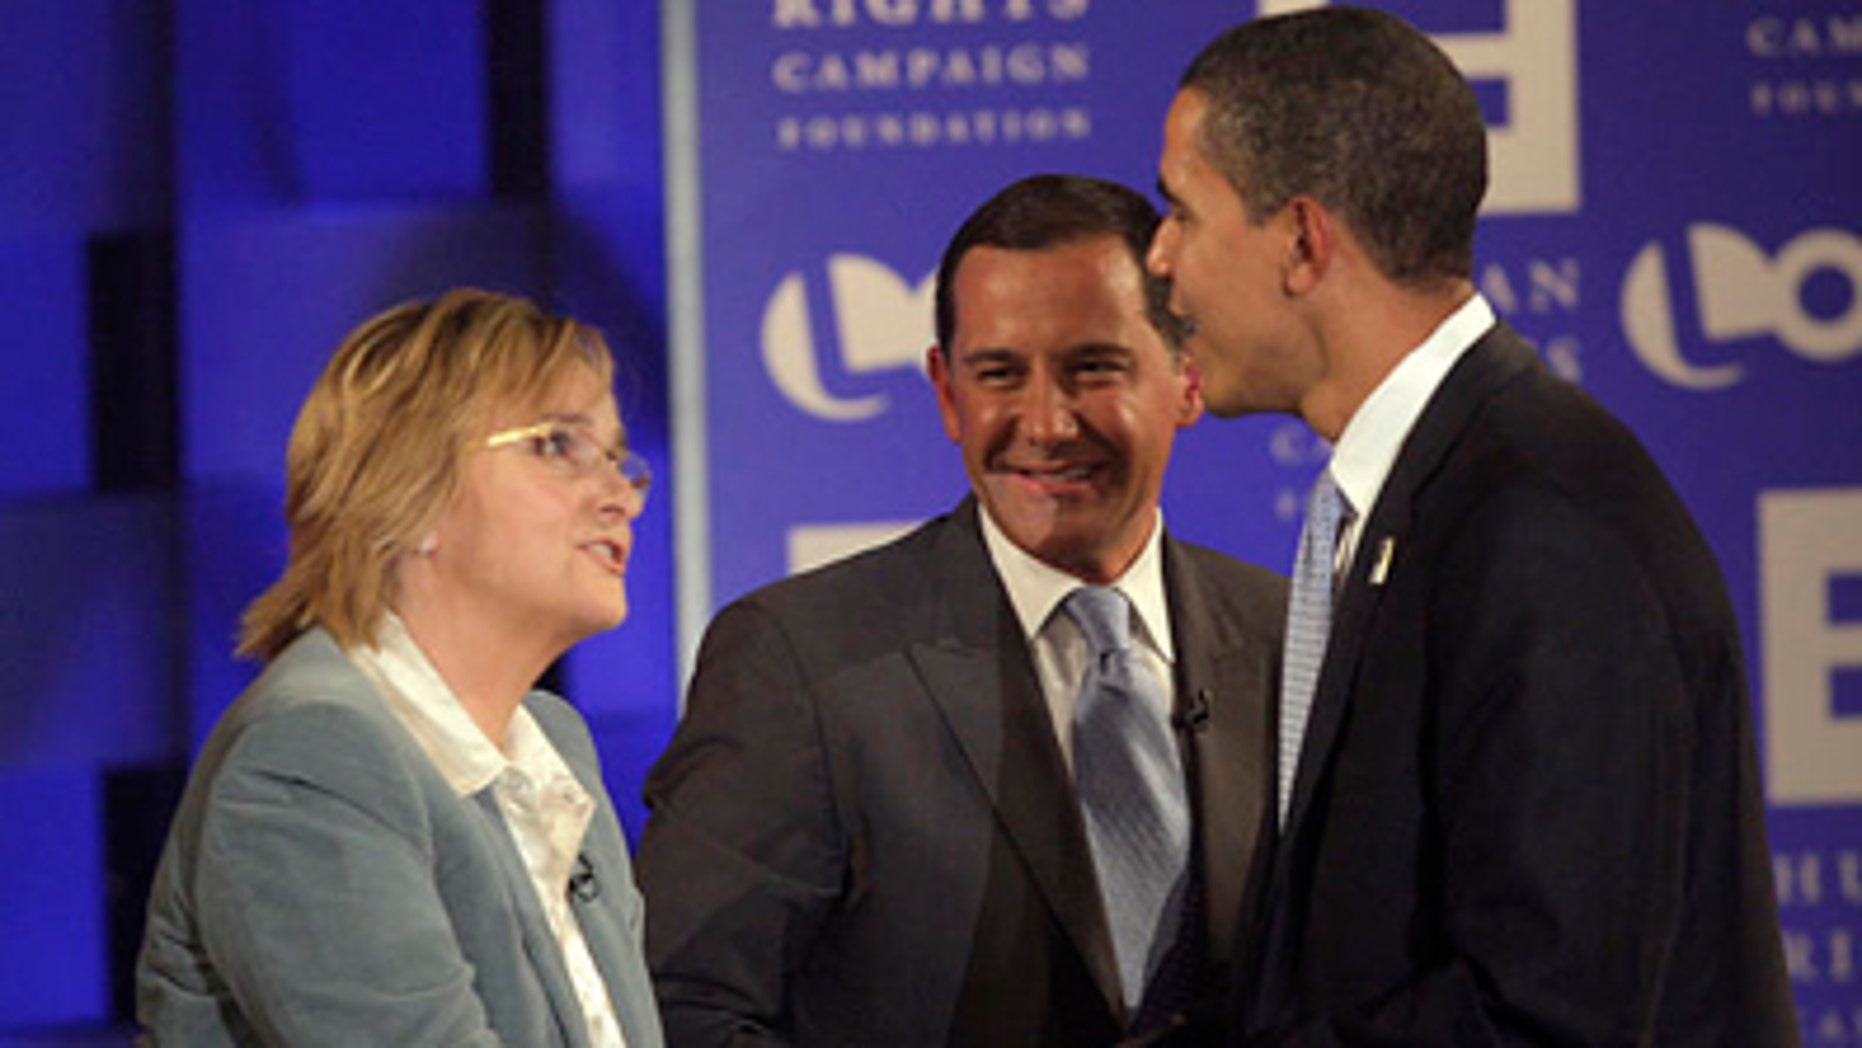 Aug. 9, 2007: Presidential hopeful Barack Obama speaks to singer Melissa Etheridge and Human Rights Campaign President Joe Solmonese at a presidential forum focused on lesbian, gay, bisexual and transgender issues co-sponsored by cable channel Logo and the HRC Foundation.